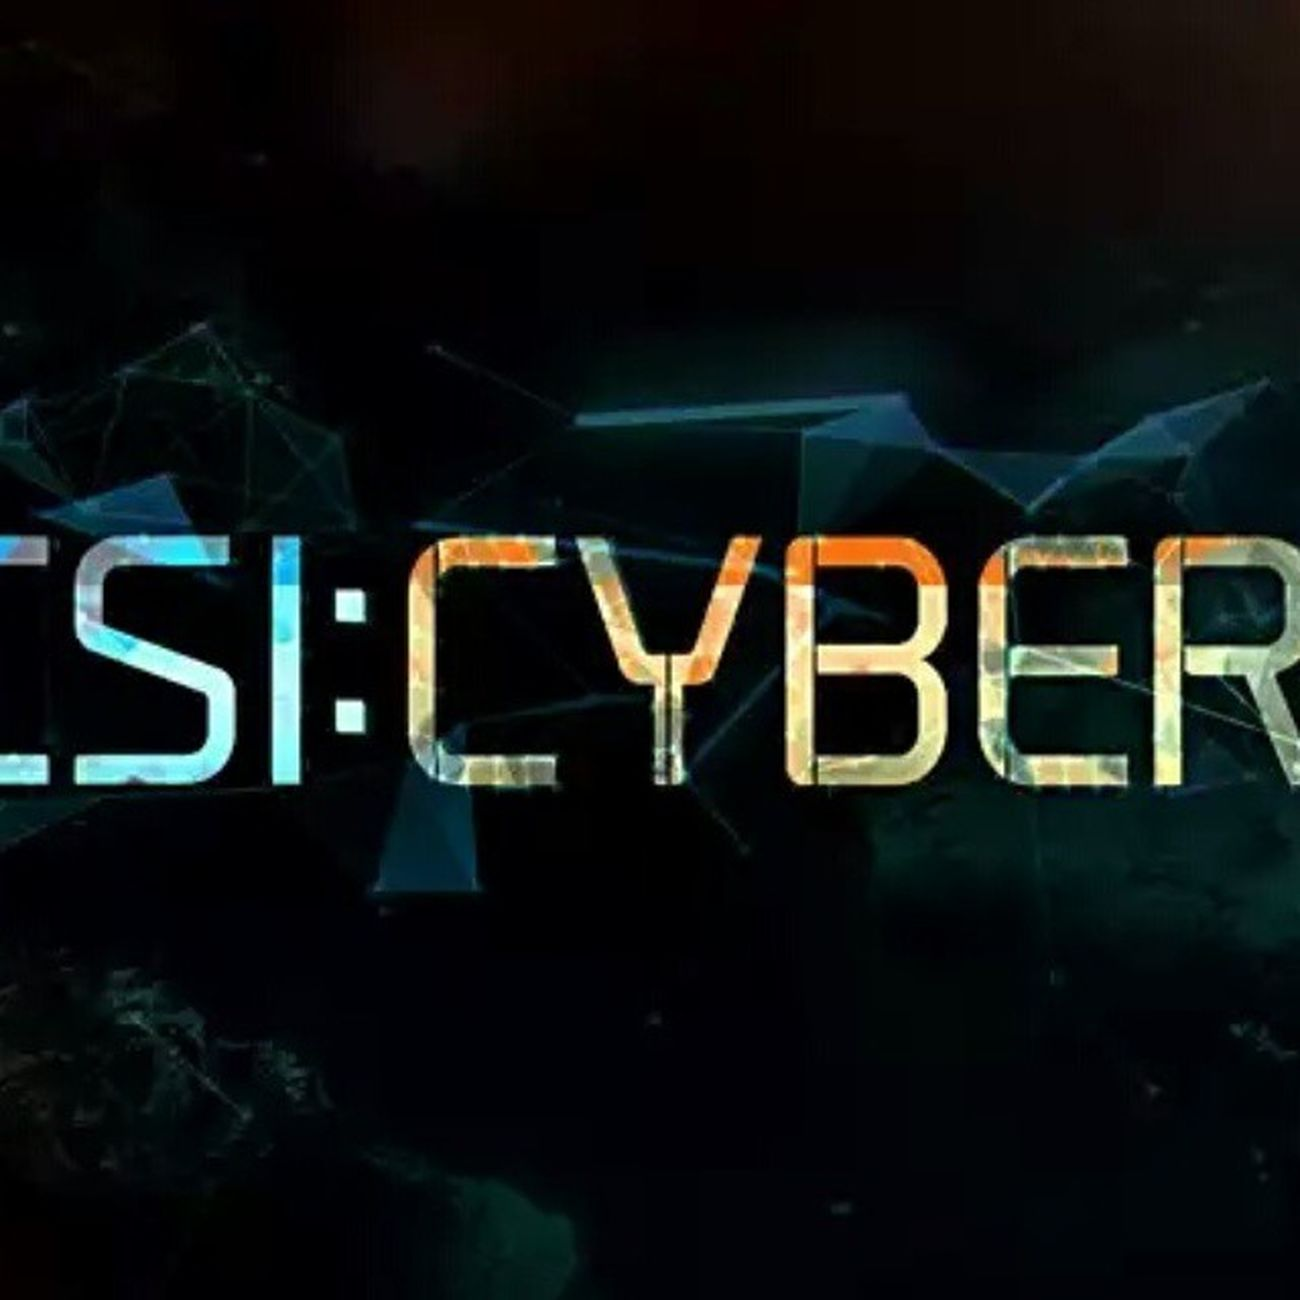 CSI:CYBER is awful. Just awful. CSI Csicyber Awful Television me love tv